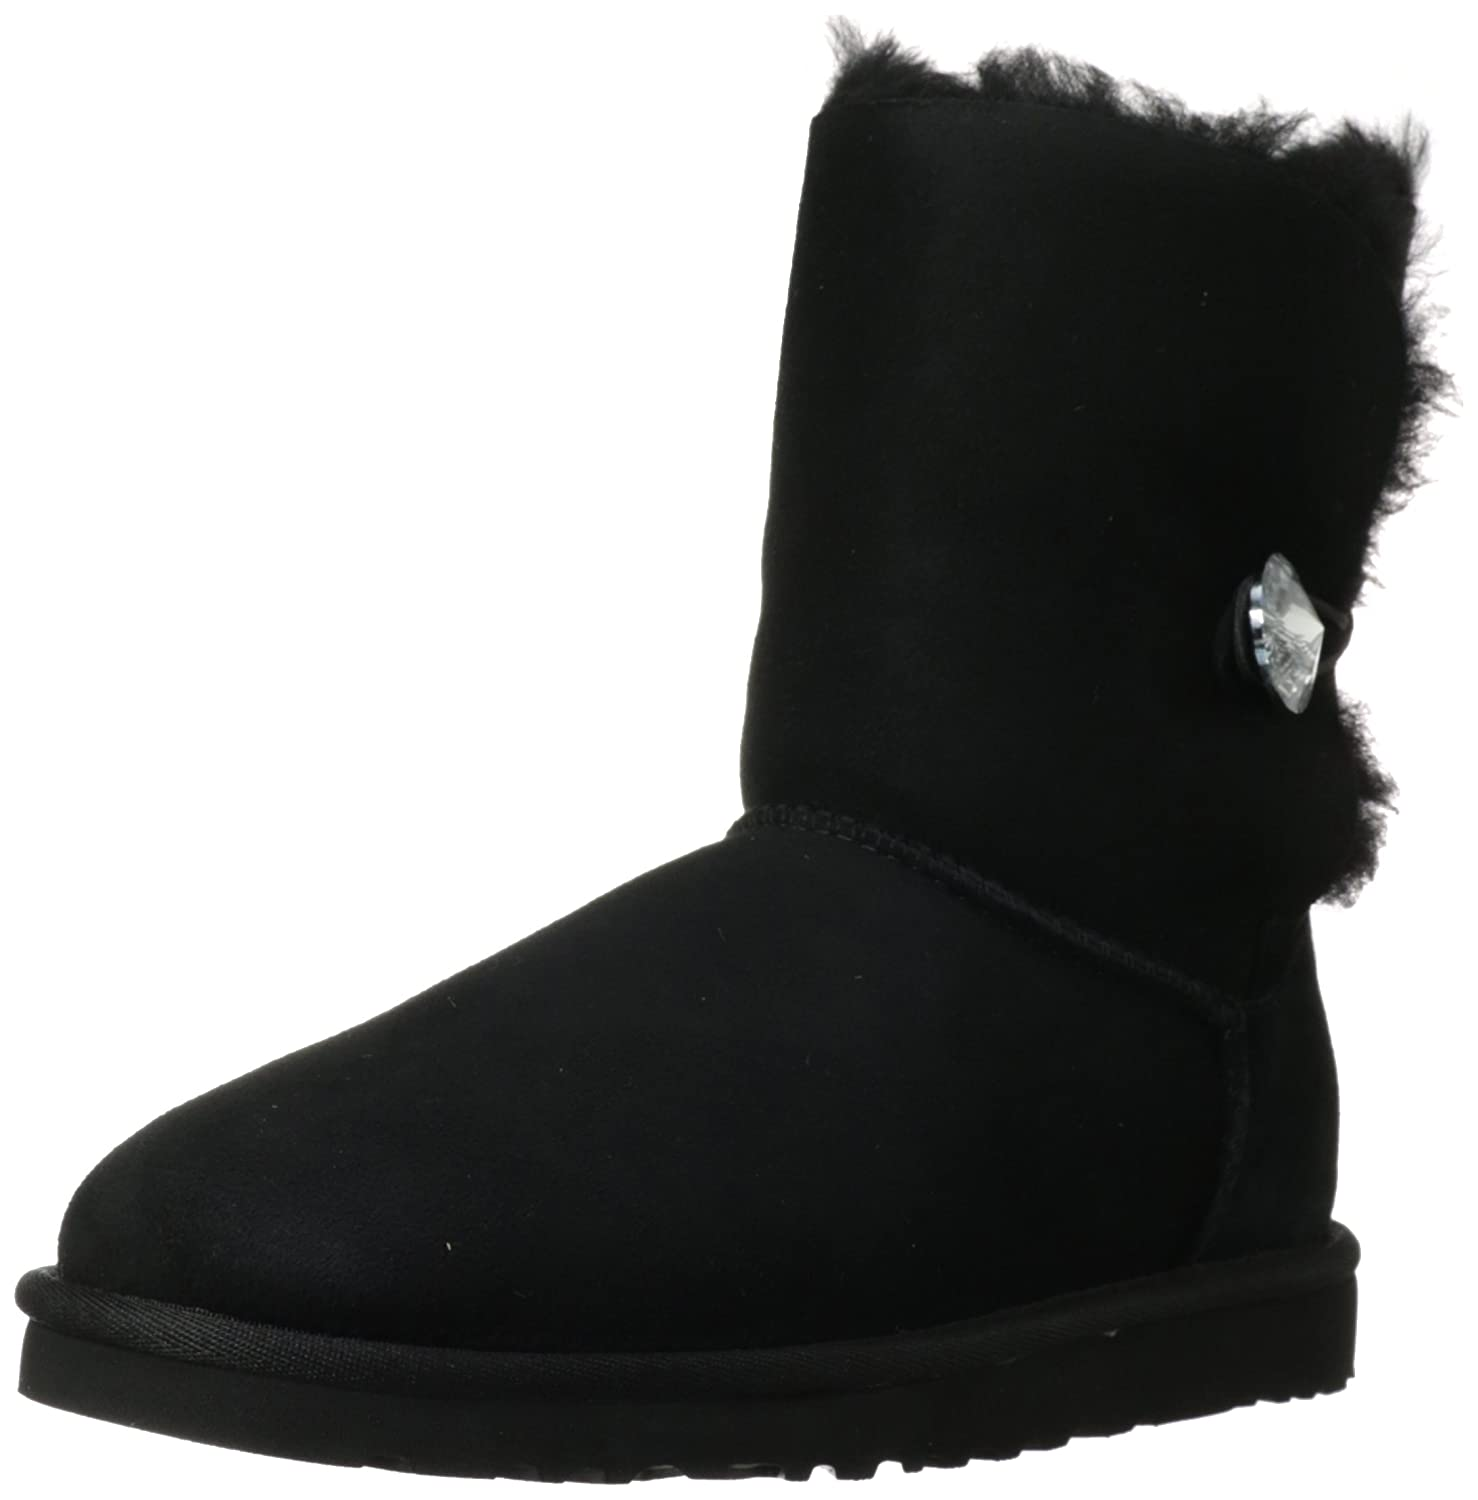 bfd1565e7a3 UGG Women's Bailey Button Bling Winter Boot